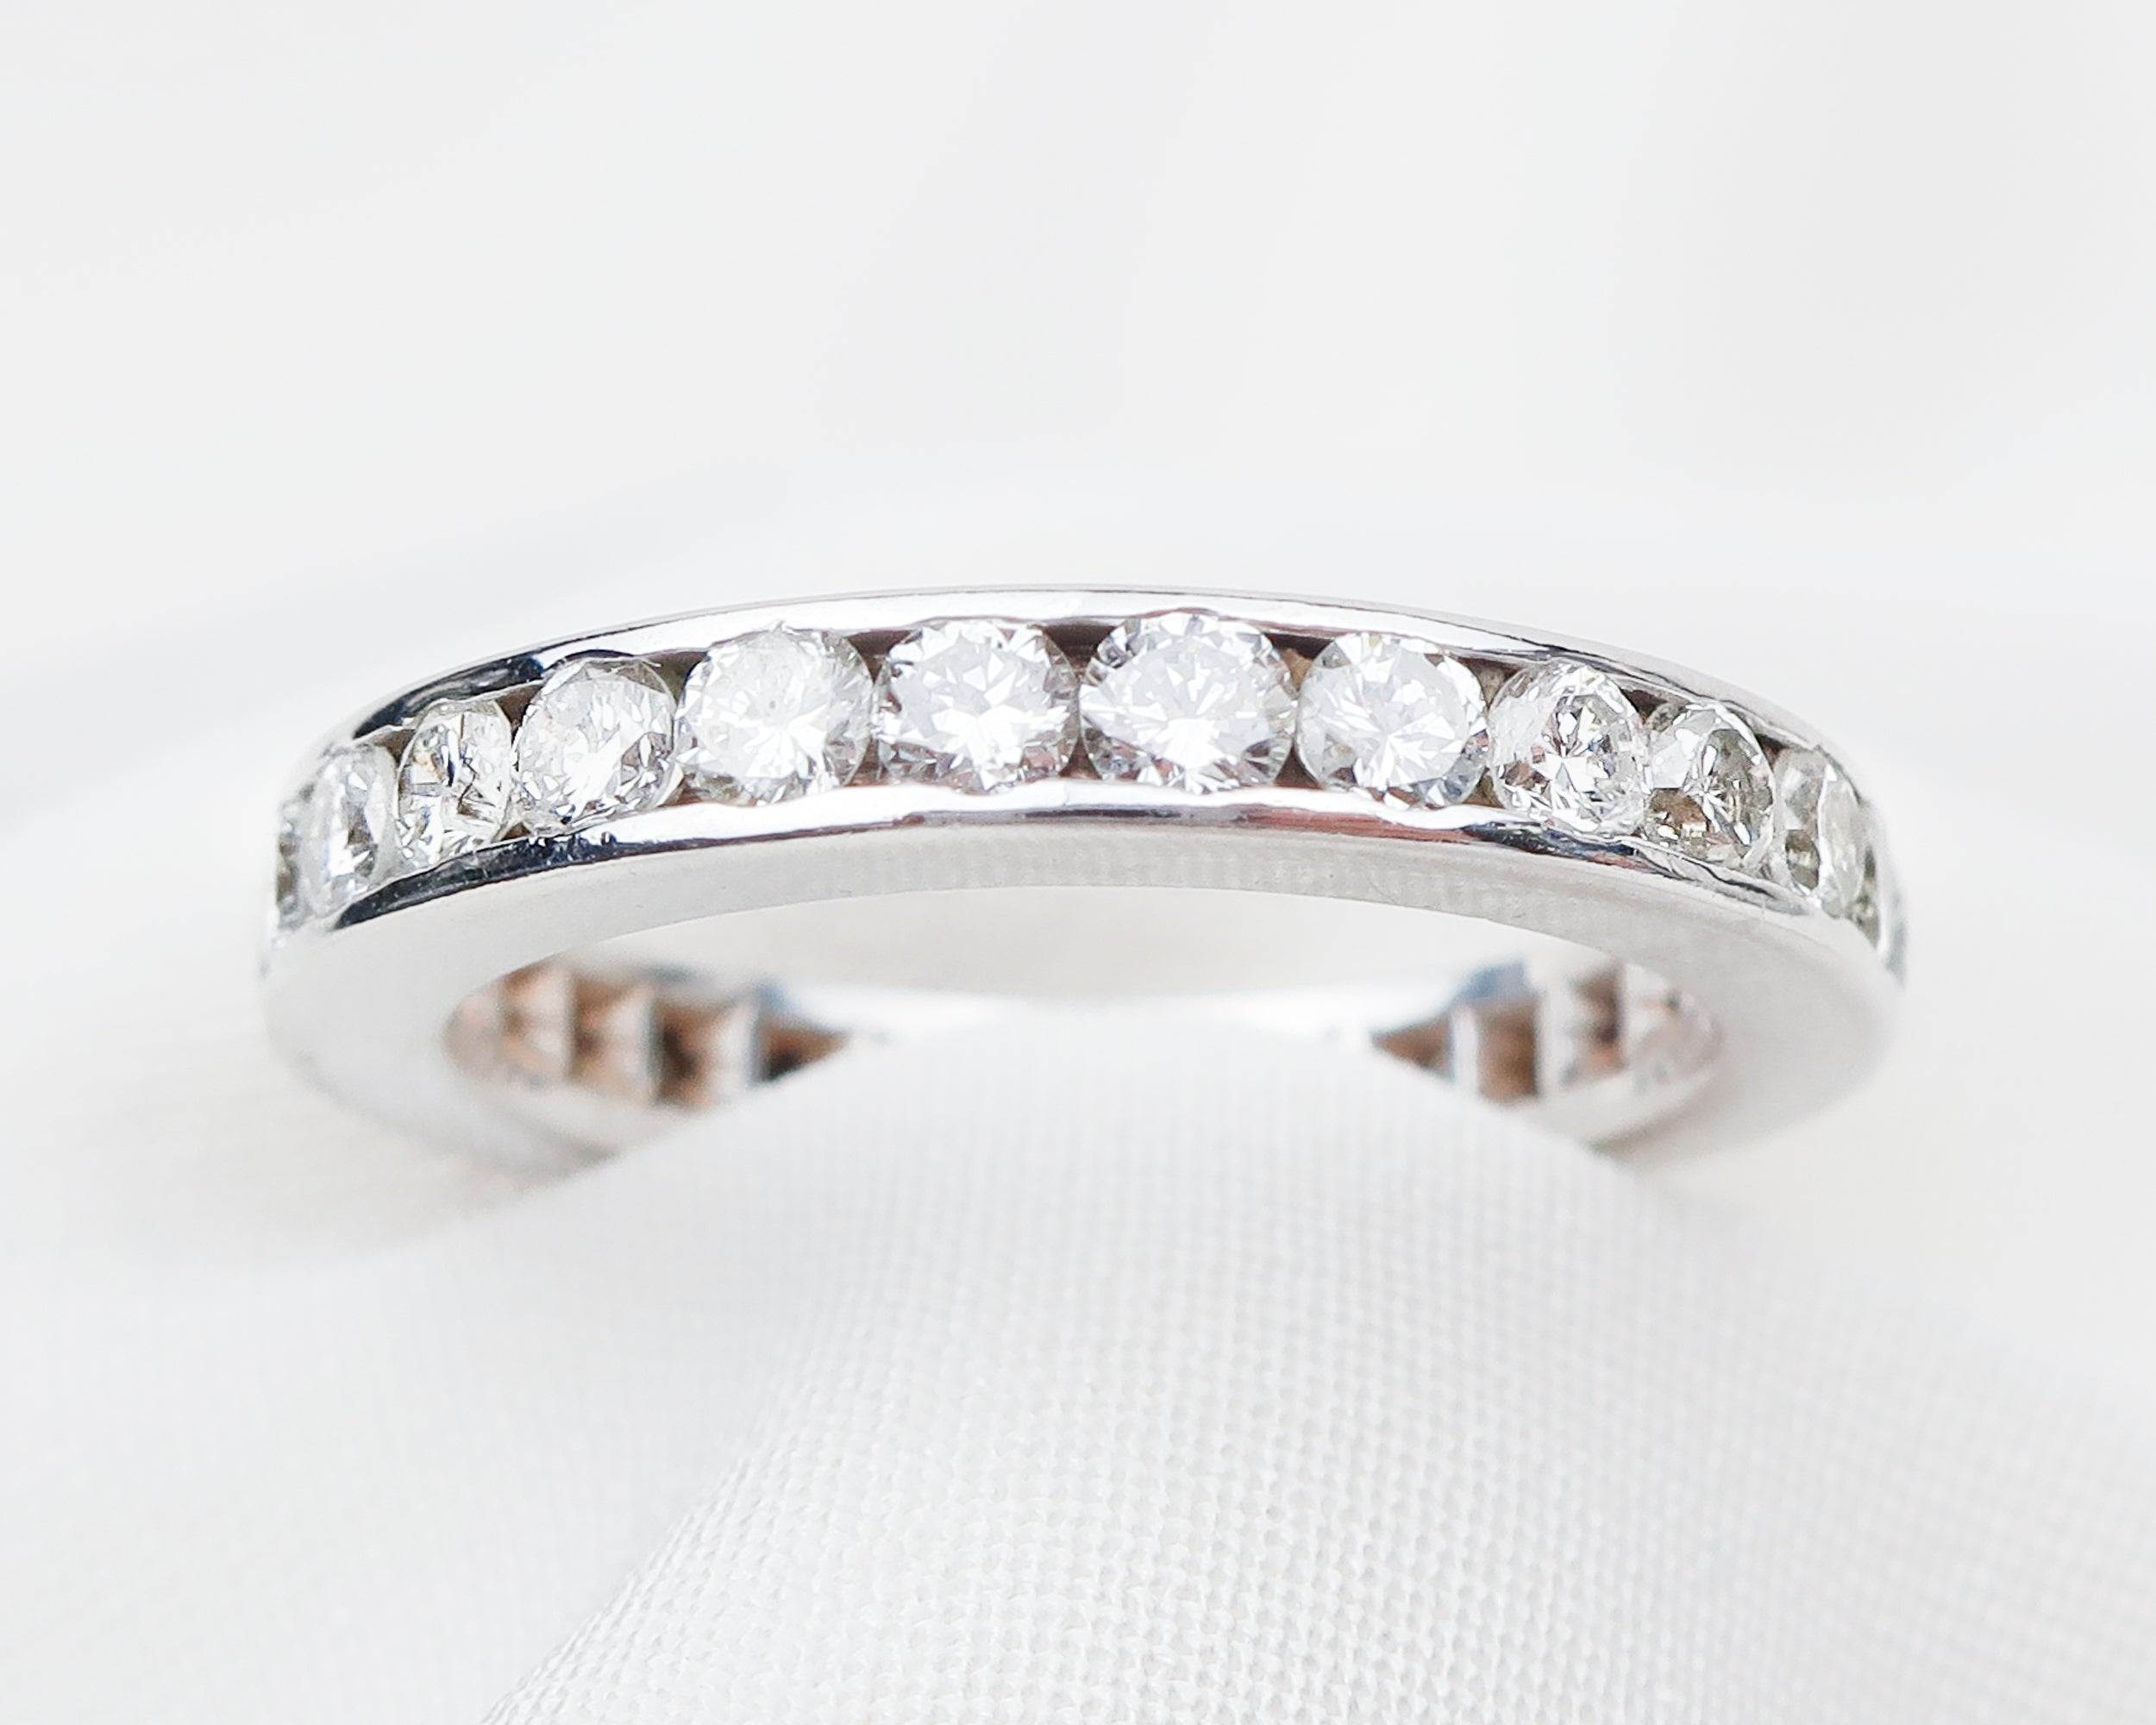 Late-Midcentury French Eternity Band